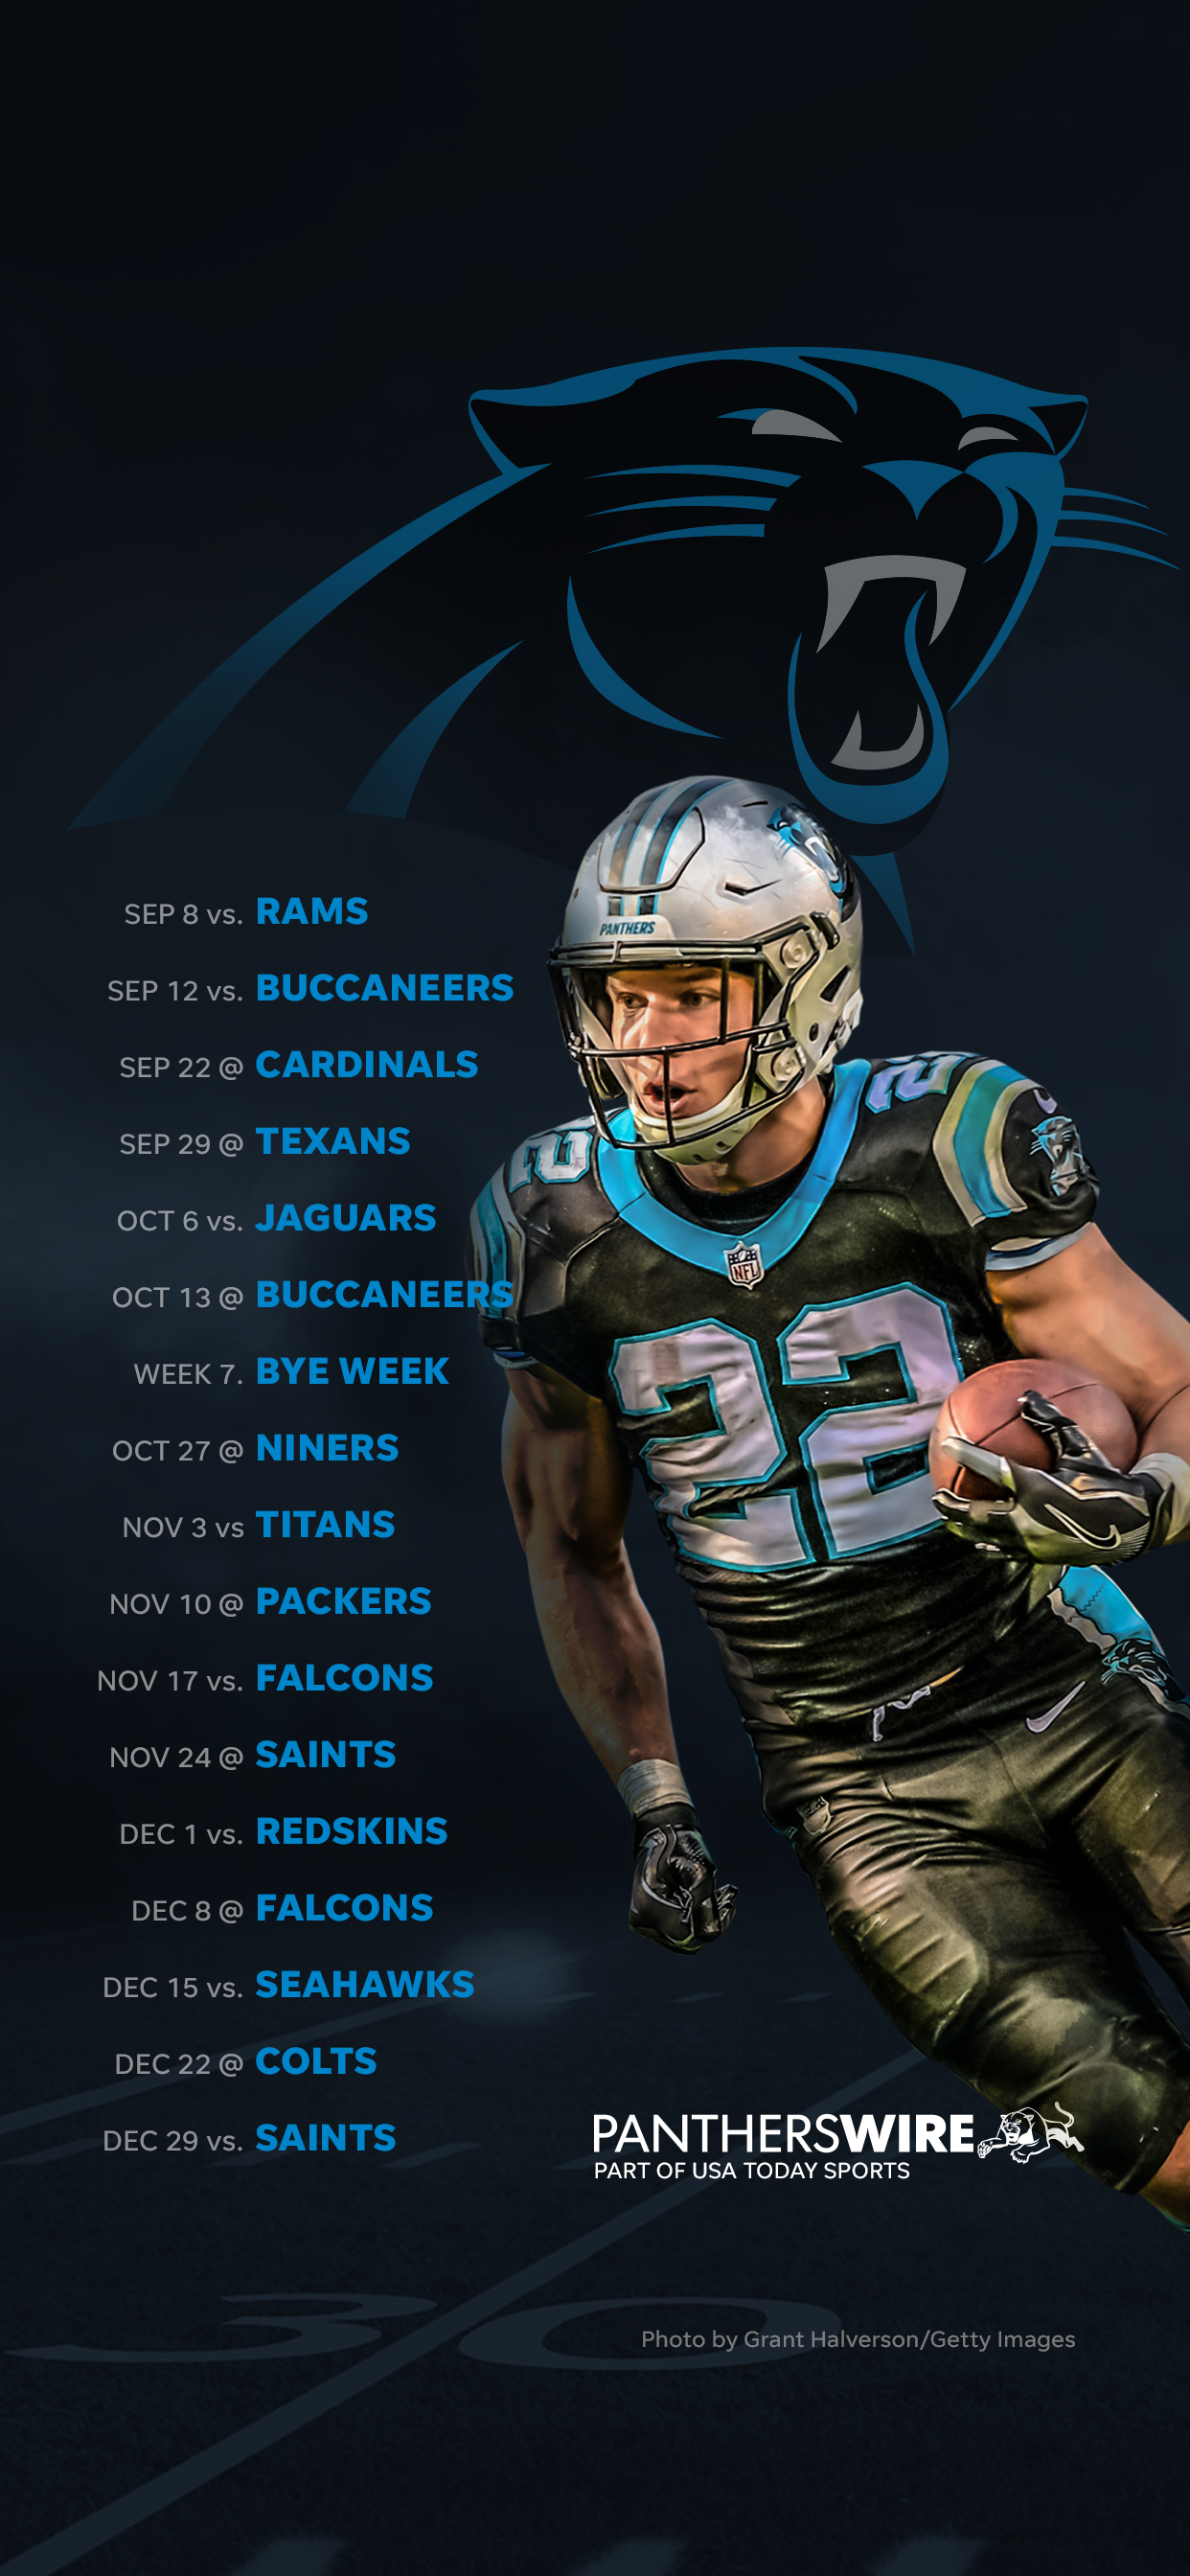 2019 Carolina Panthers Football Schedule Downloadable Wallpaper